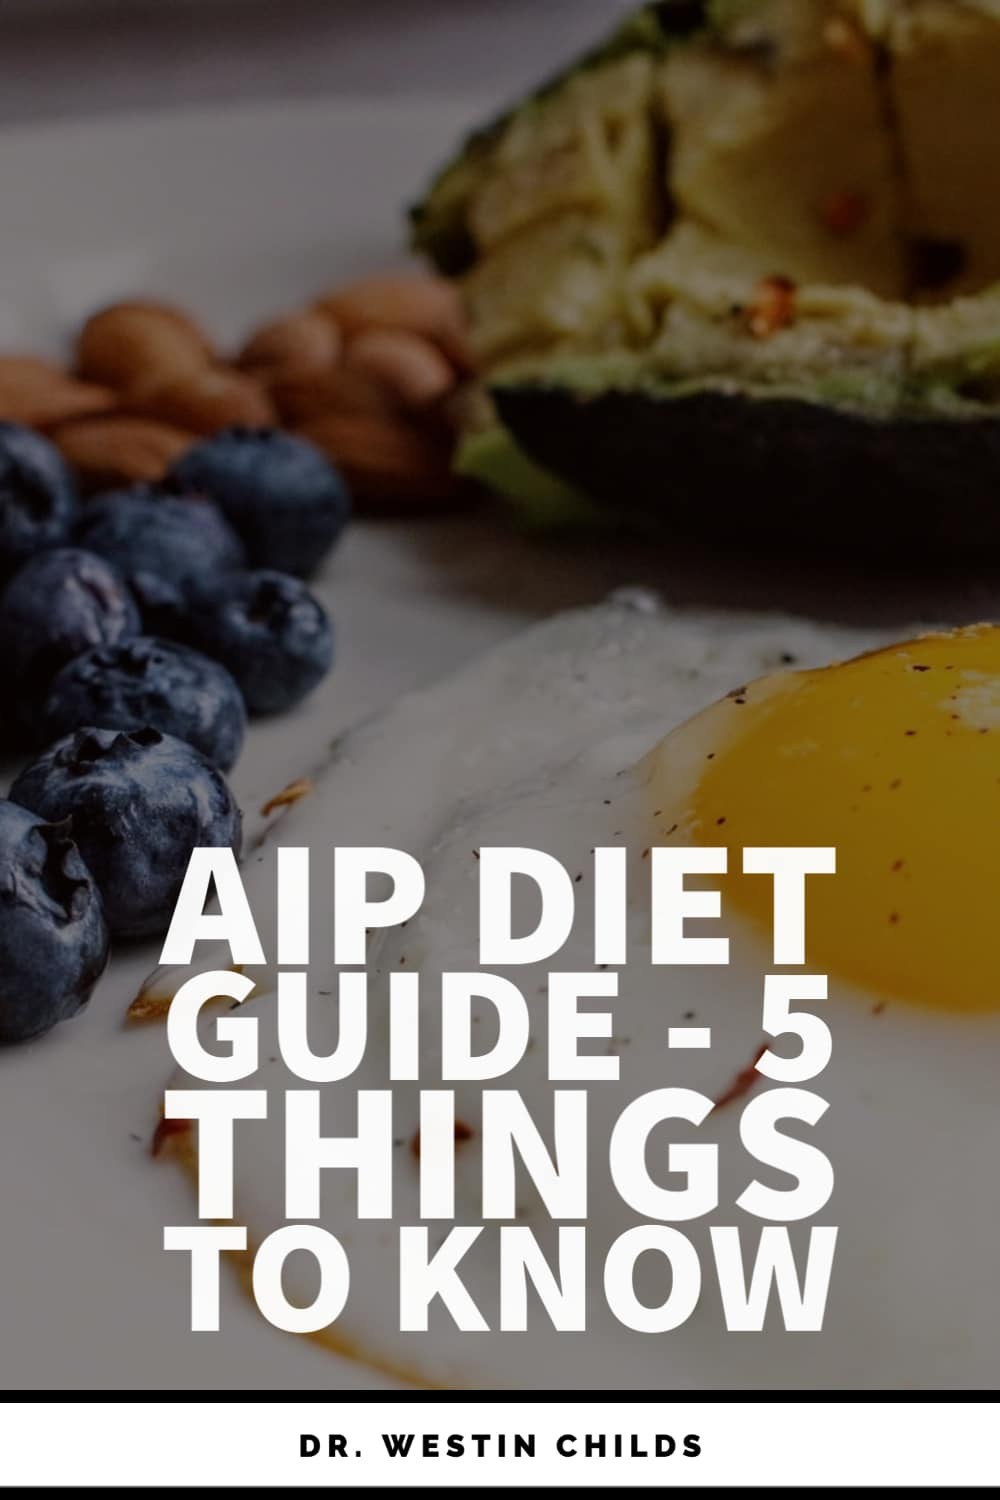 AIP diet guide - what you should know